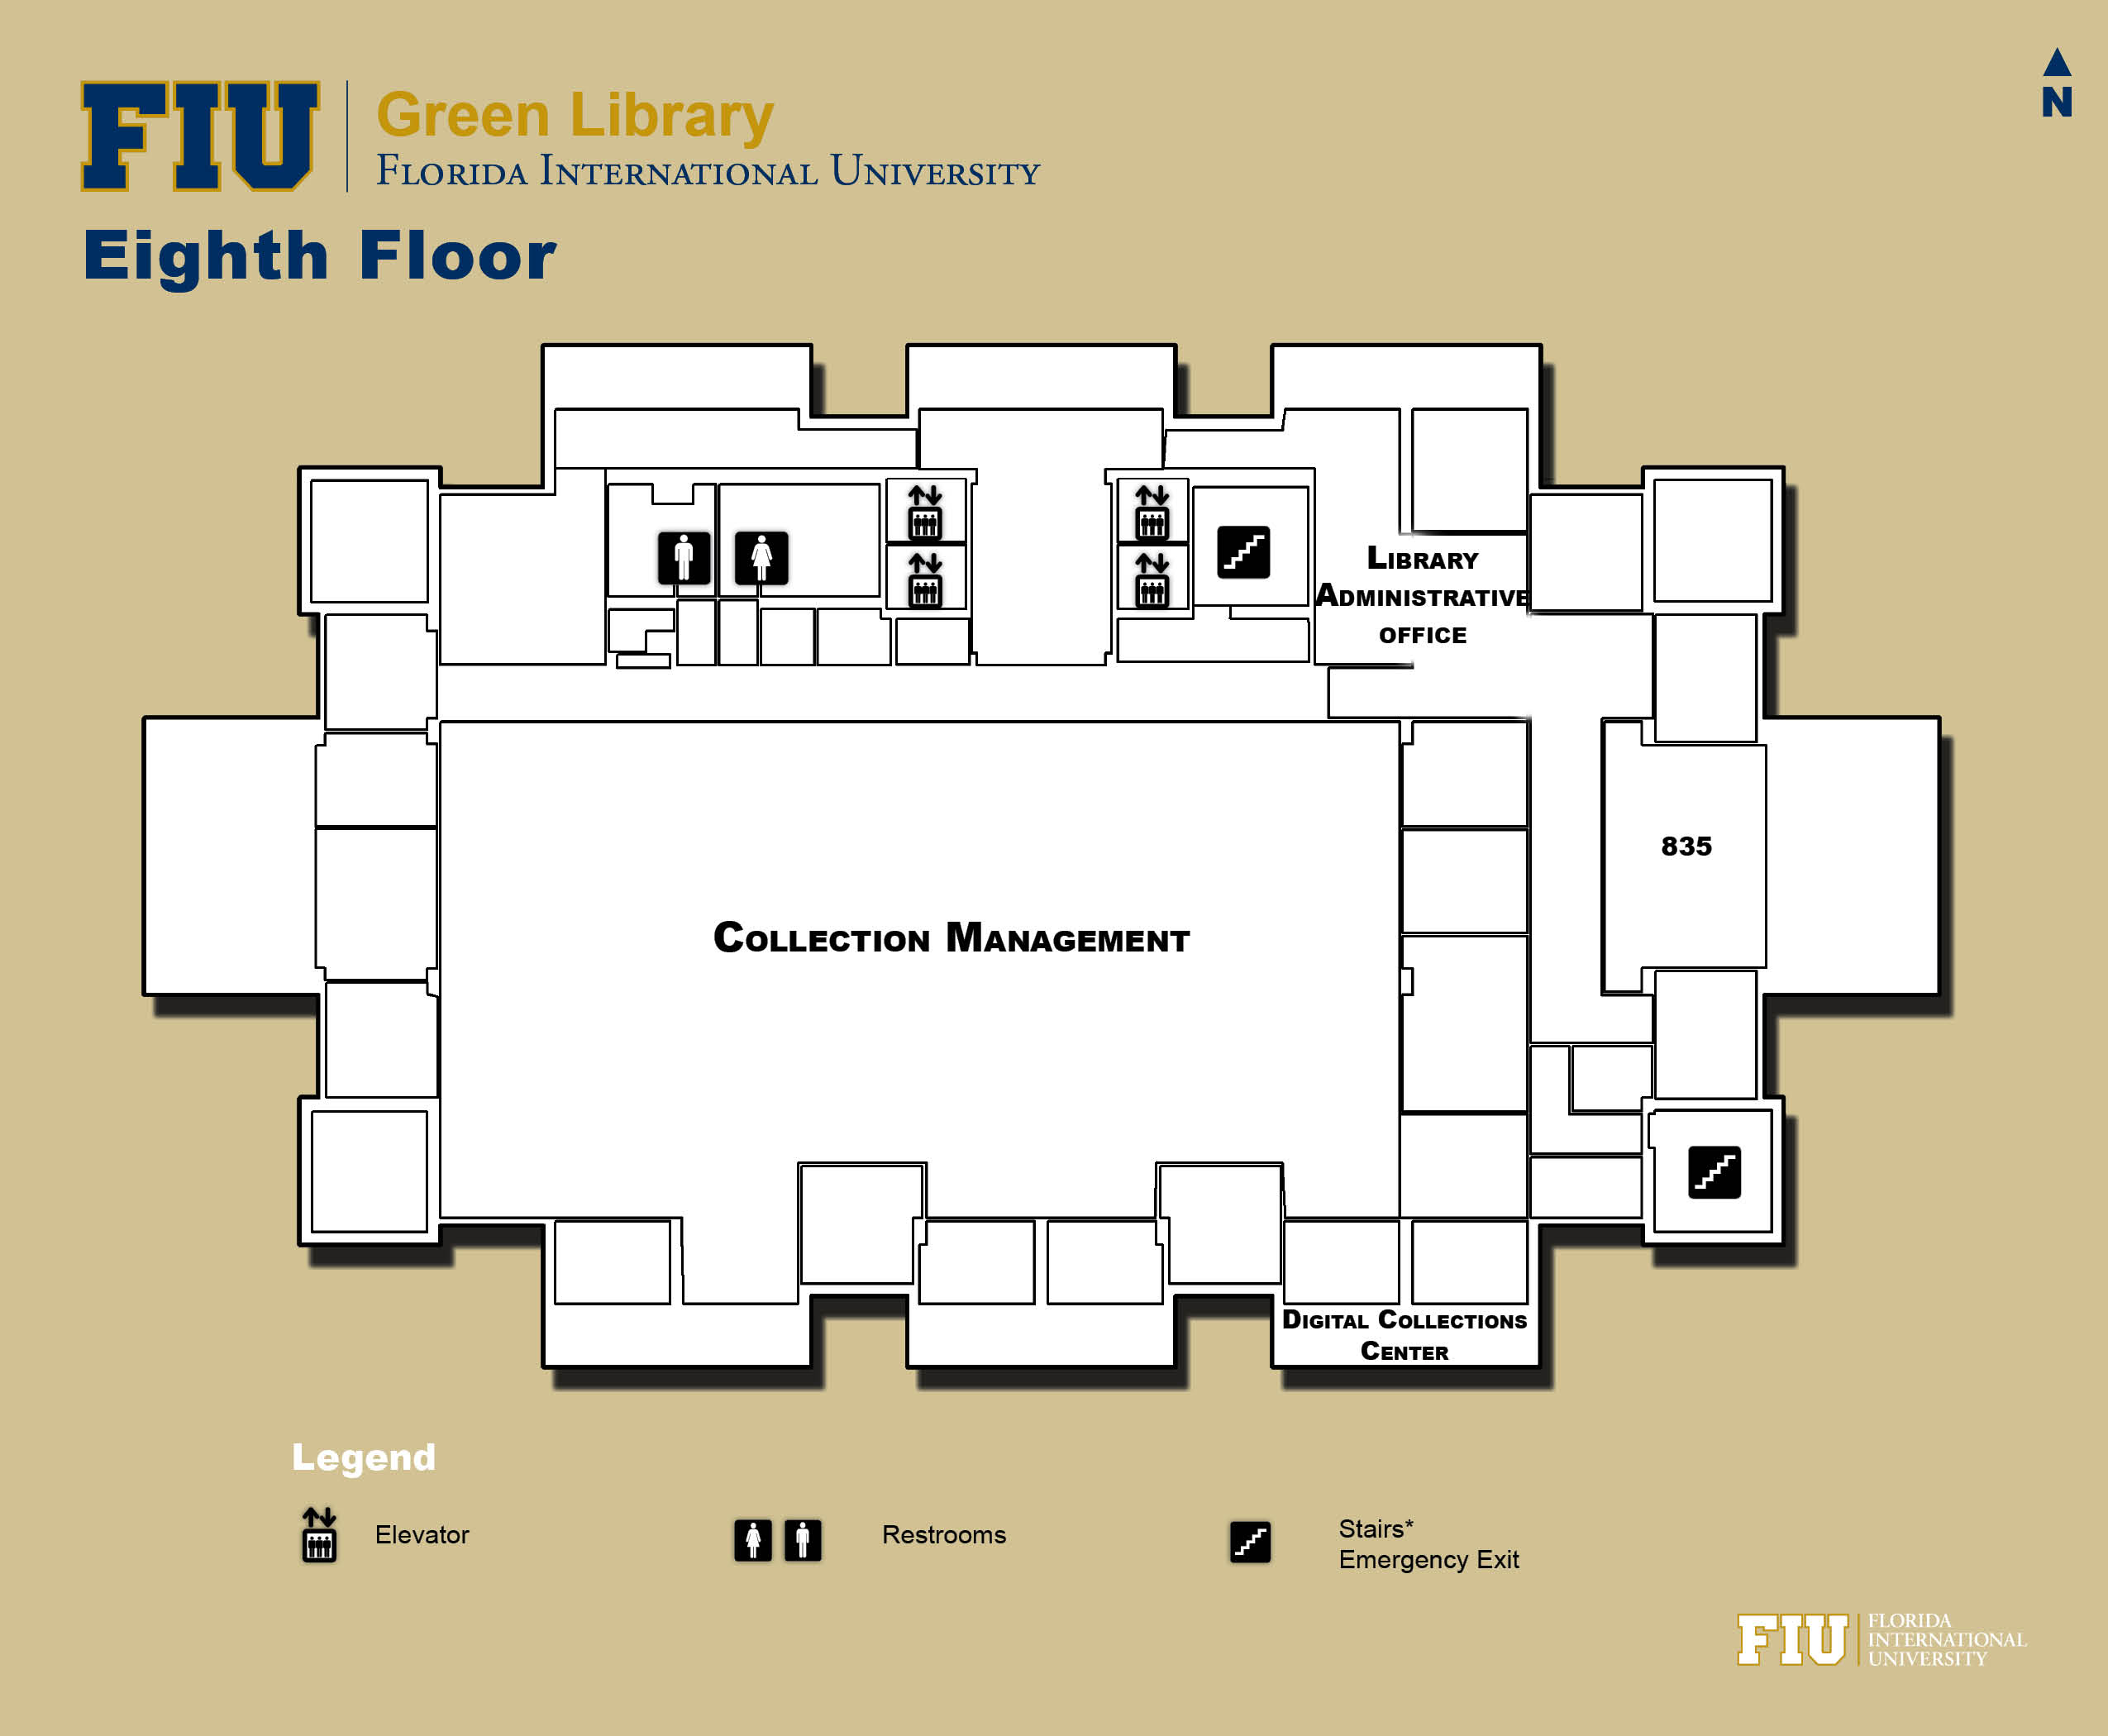 Floorplan for Floor 8 of Green Library